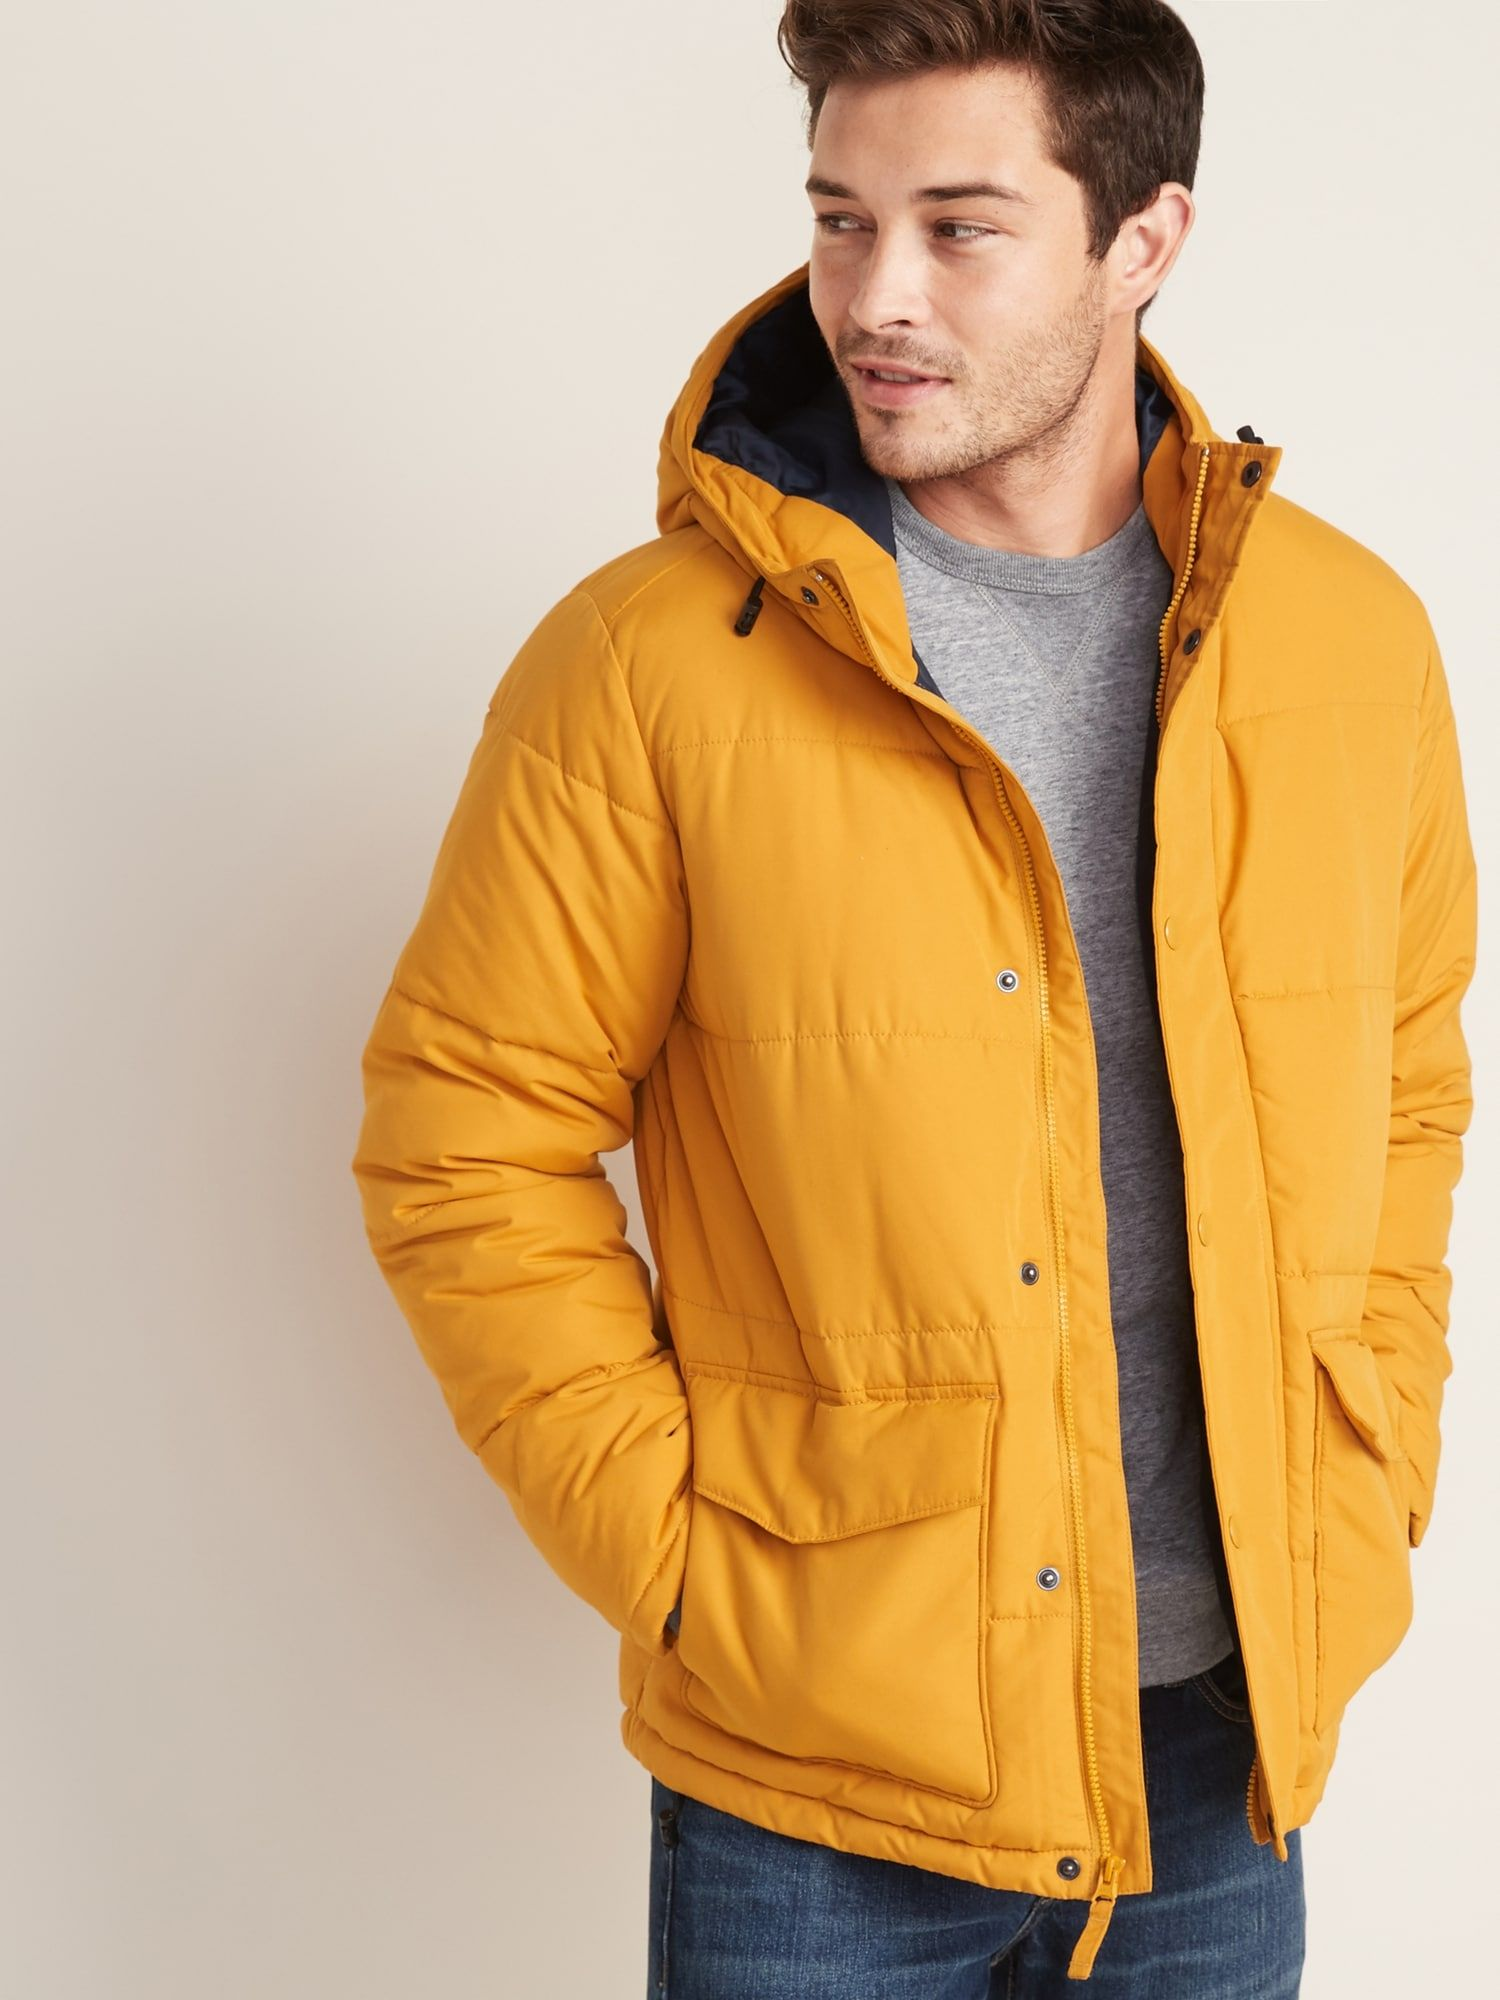 Water-Resistant Hooded Puffer Jacket For Men   Puffer ...